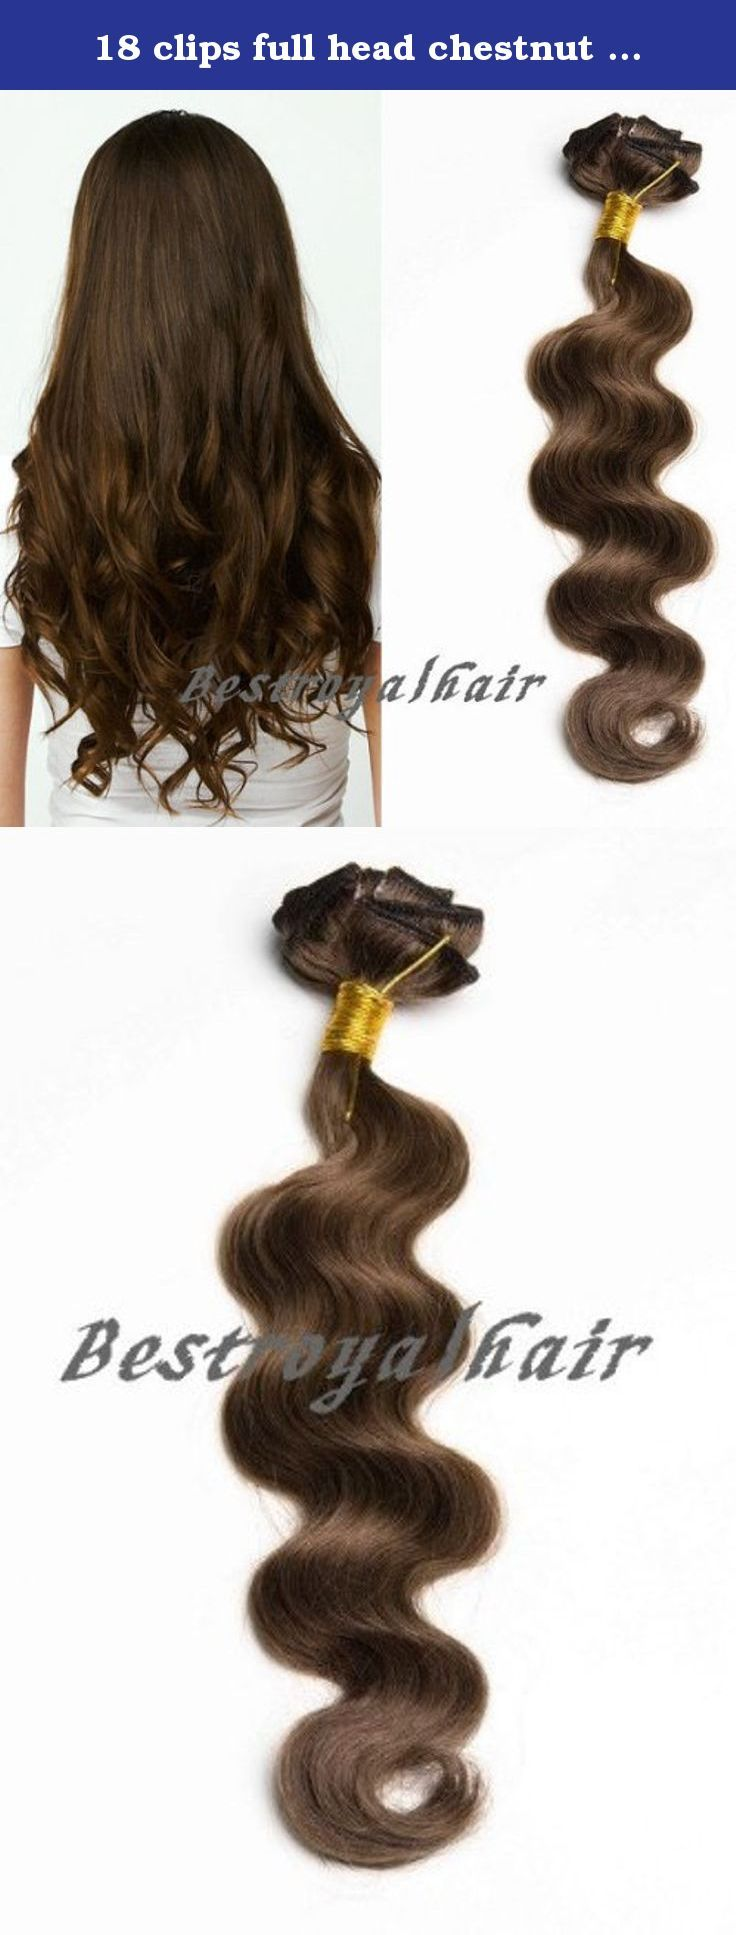 18 clips full head chestnut brown color indian remy clip in hair extensions RHS099 (20 inch). This Indian Remy hair extension in chestnut brown is reminding us of its bright and lovely nature, which looks like a flower in blooming with cheerful sense. It is of 100% Indian virgin human hair with silky curly beauty, which is very close to the nature of our own hair. By the use of clipping in this nice hair in 3 to 7 day's time, your new smart hairstyle will greatly bright up your looks…